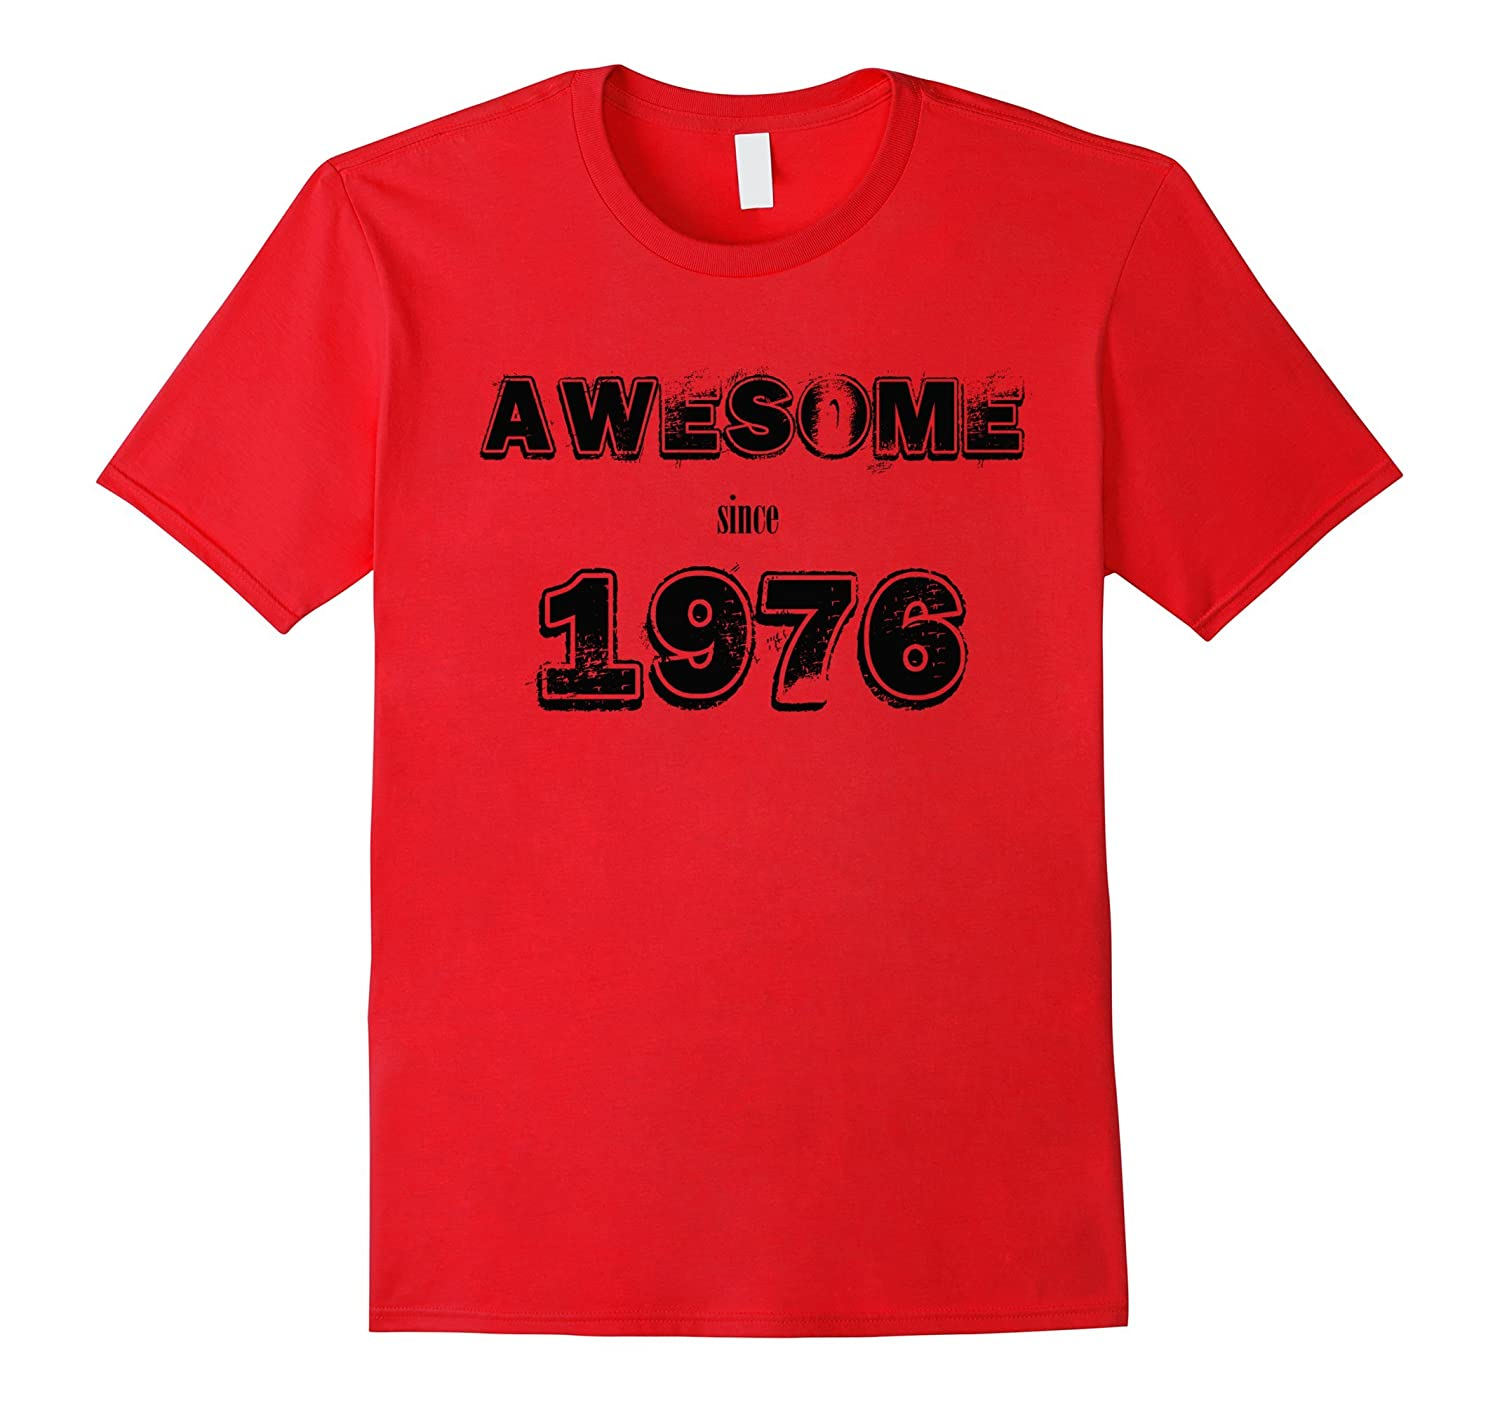 Awesome since 1976 40 birthday gift 40th tshirt-BN